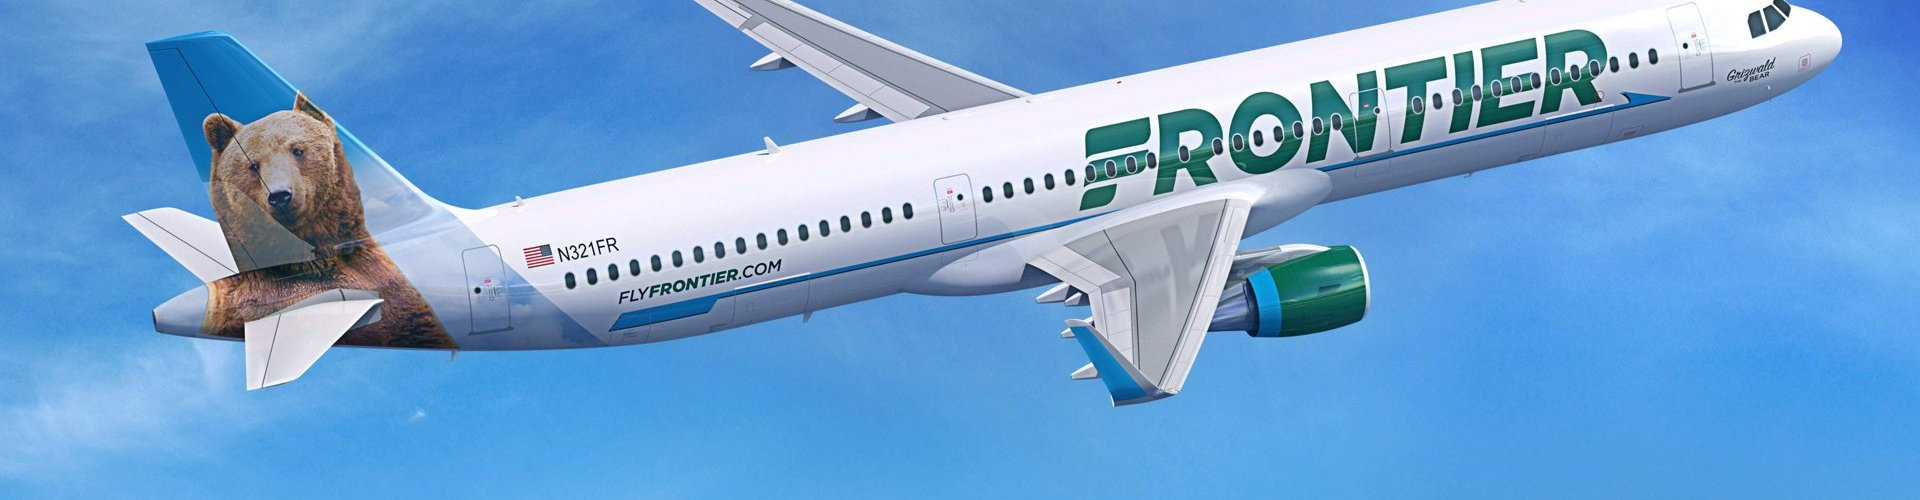 Travel Tips for Flying with Frontier Airlines